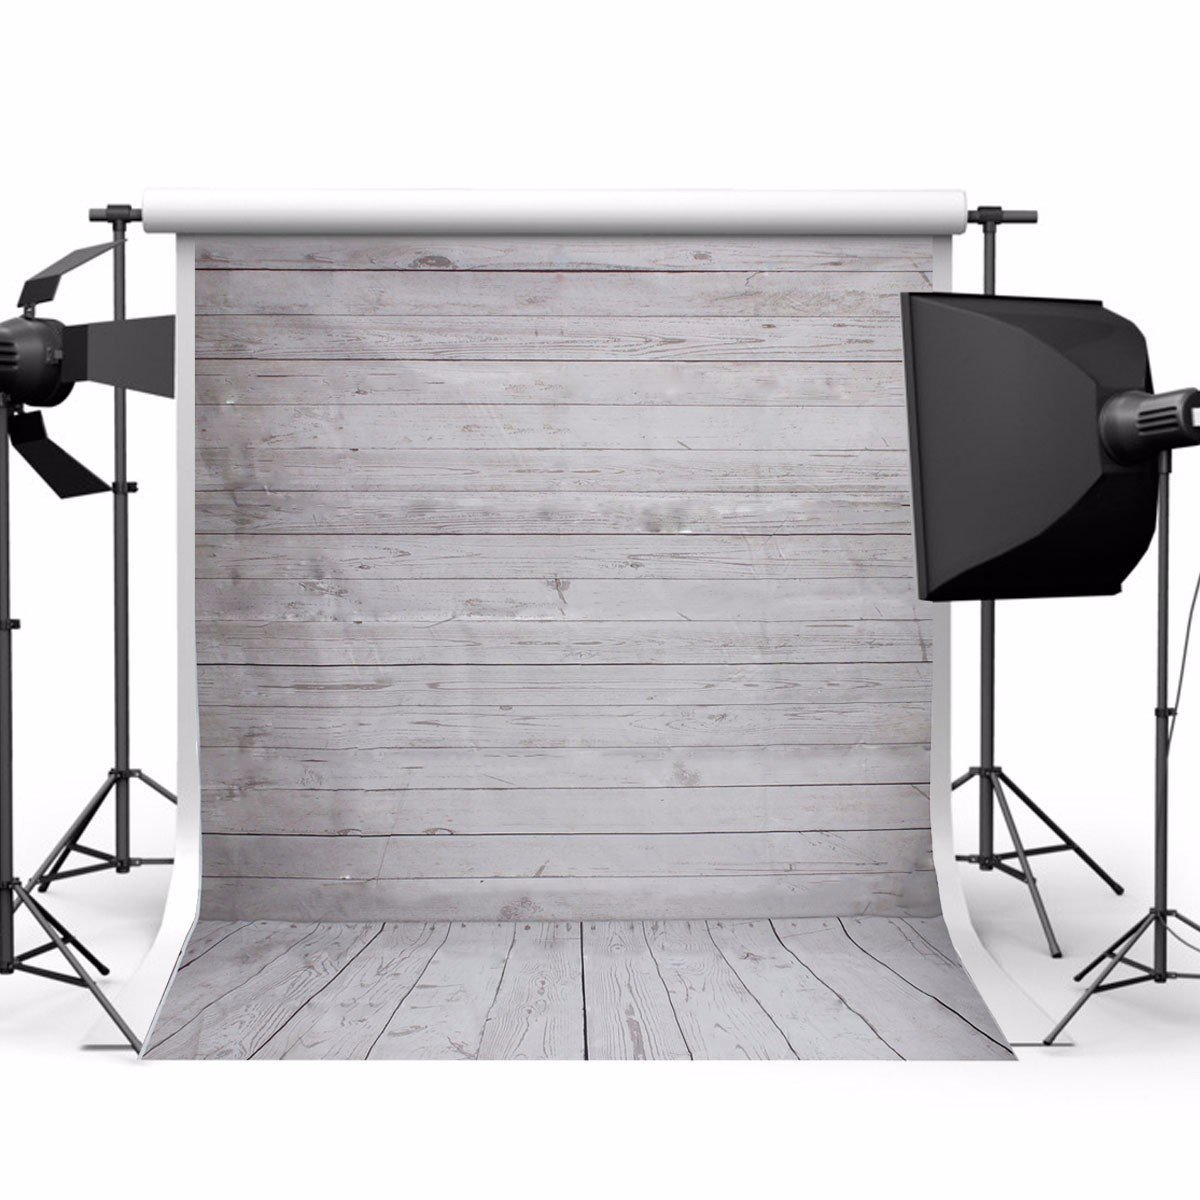 5x7ft Wood Wall Floor Studio Prop Photography Vinyl Background Photo Backdrop Best Price christmas snow vinyl studio backdrop photography photo background 7x5ft